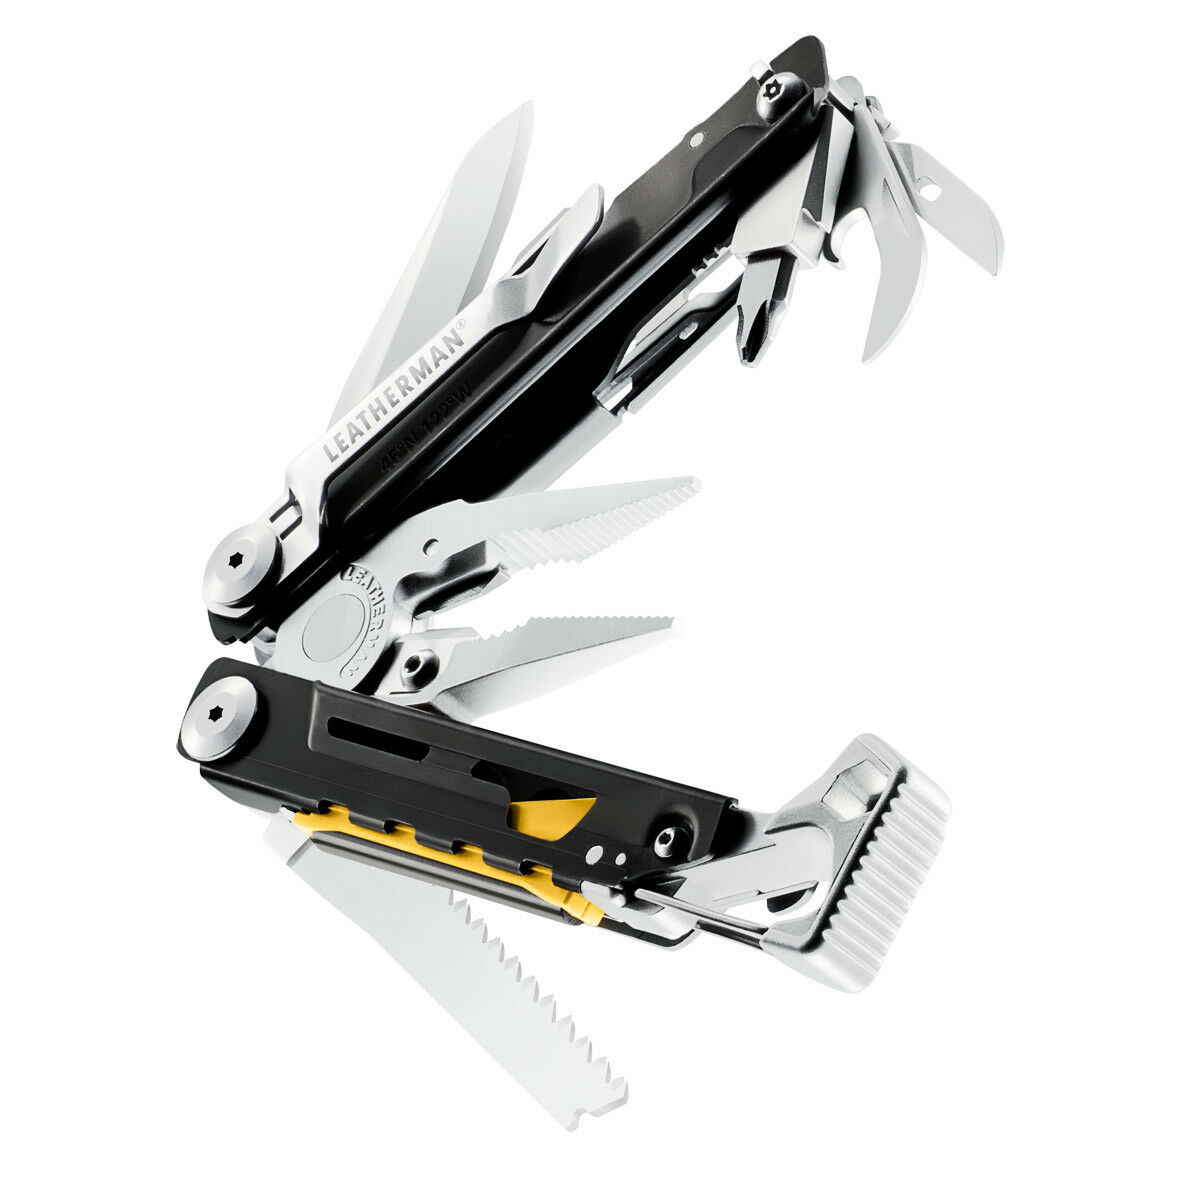 Lederman SIGNAL Multitool Survival-Tool Wildnis-Messer